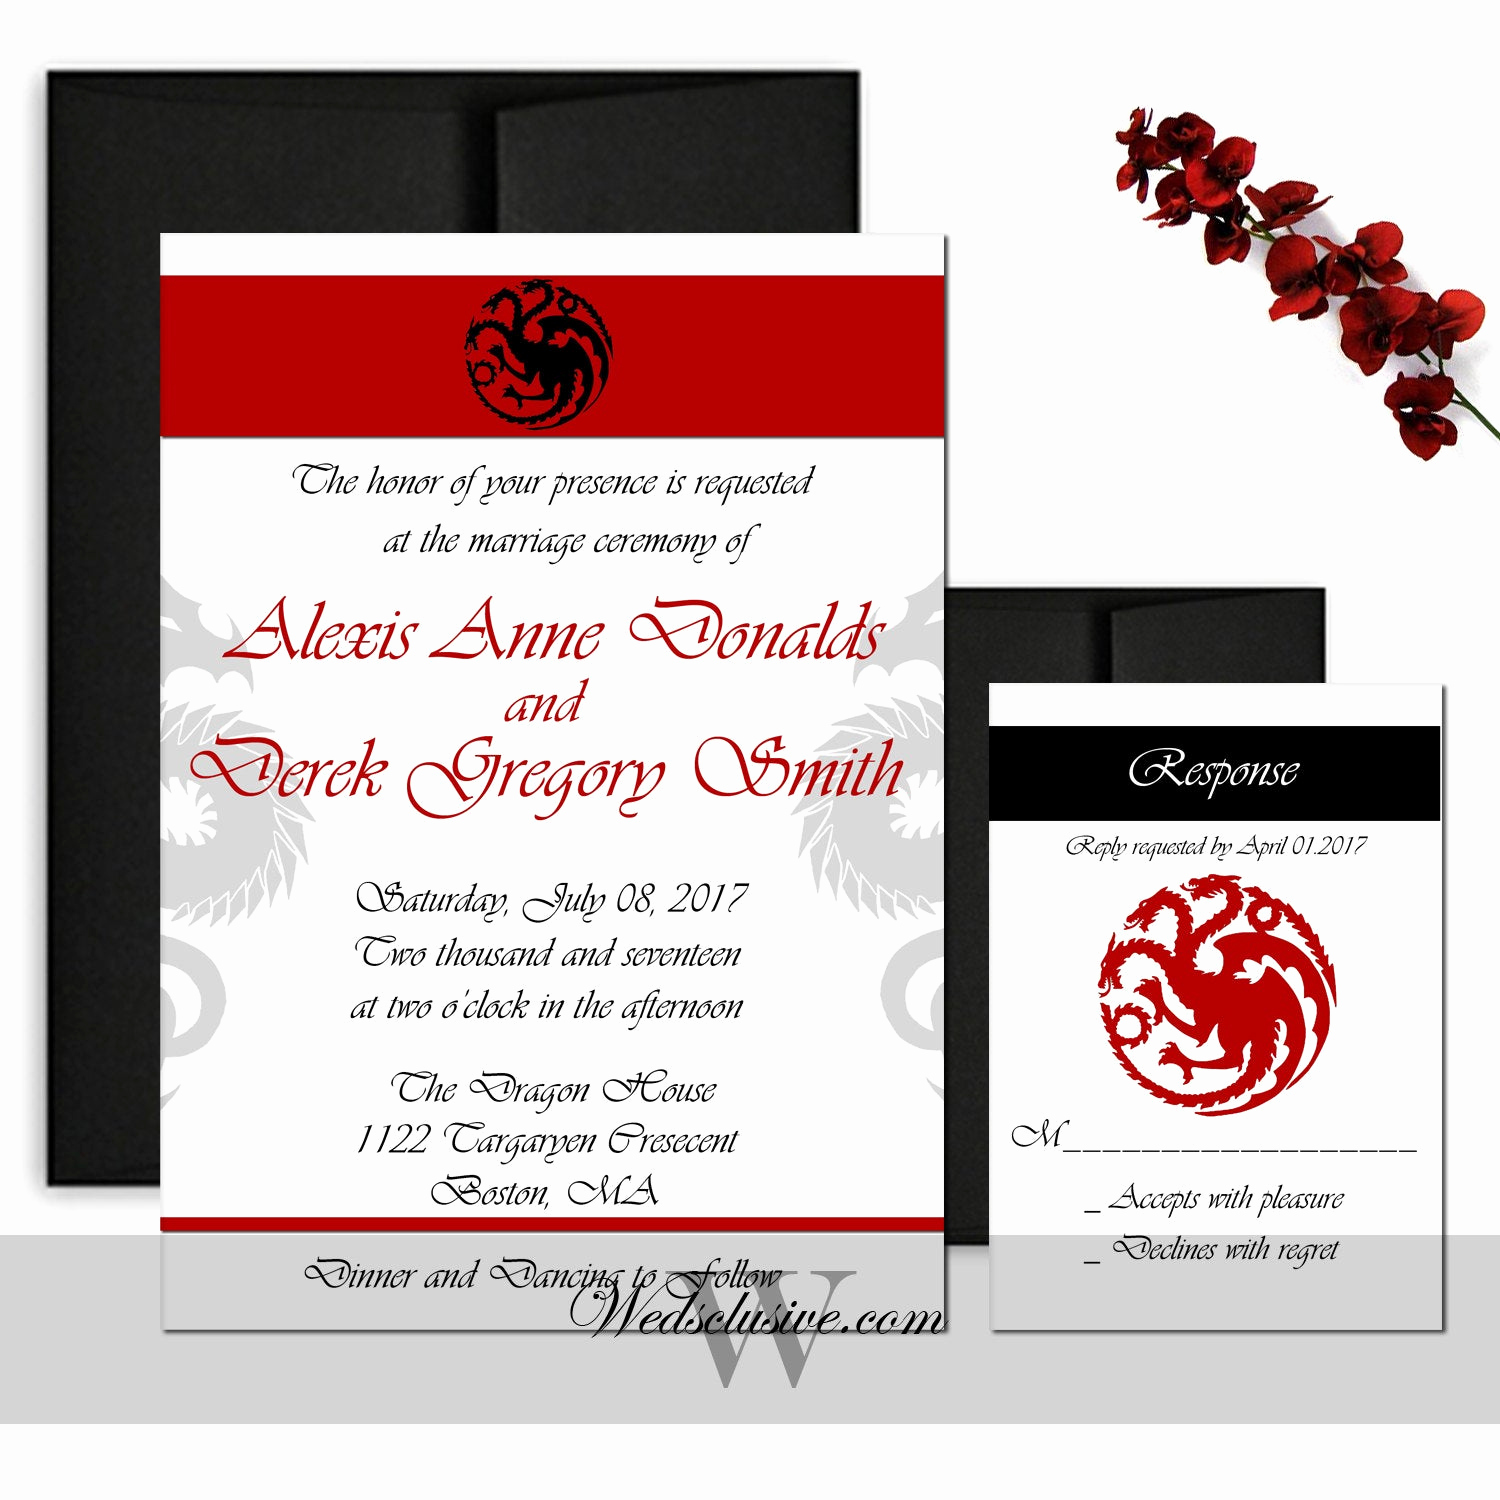 Game Of Thrones Invitation Elegant Game Of Thrones Wedding Invitations House Of Targaryen